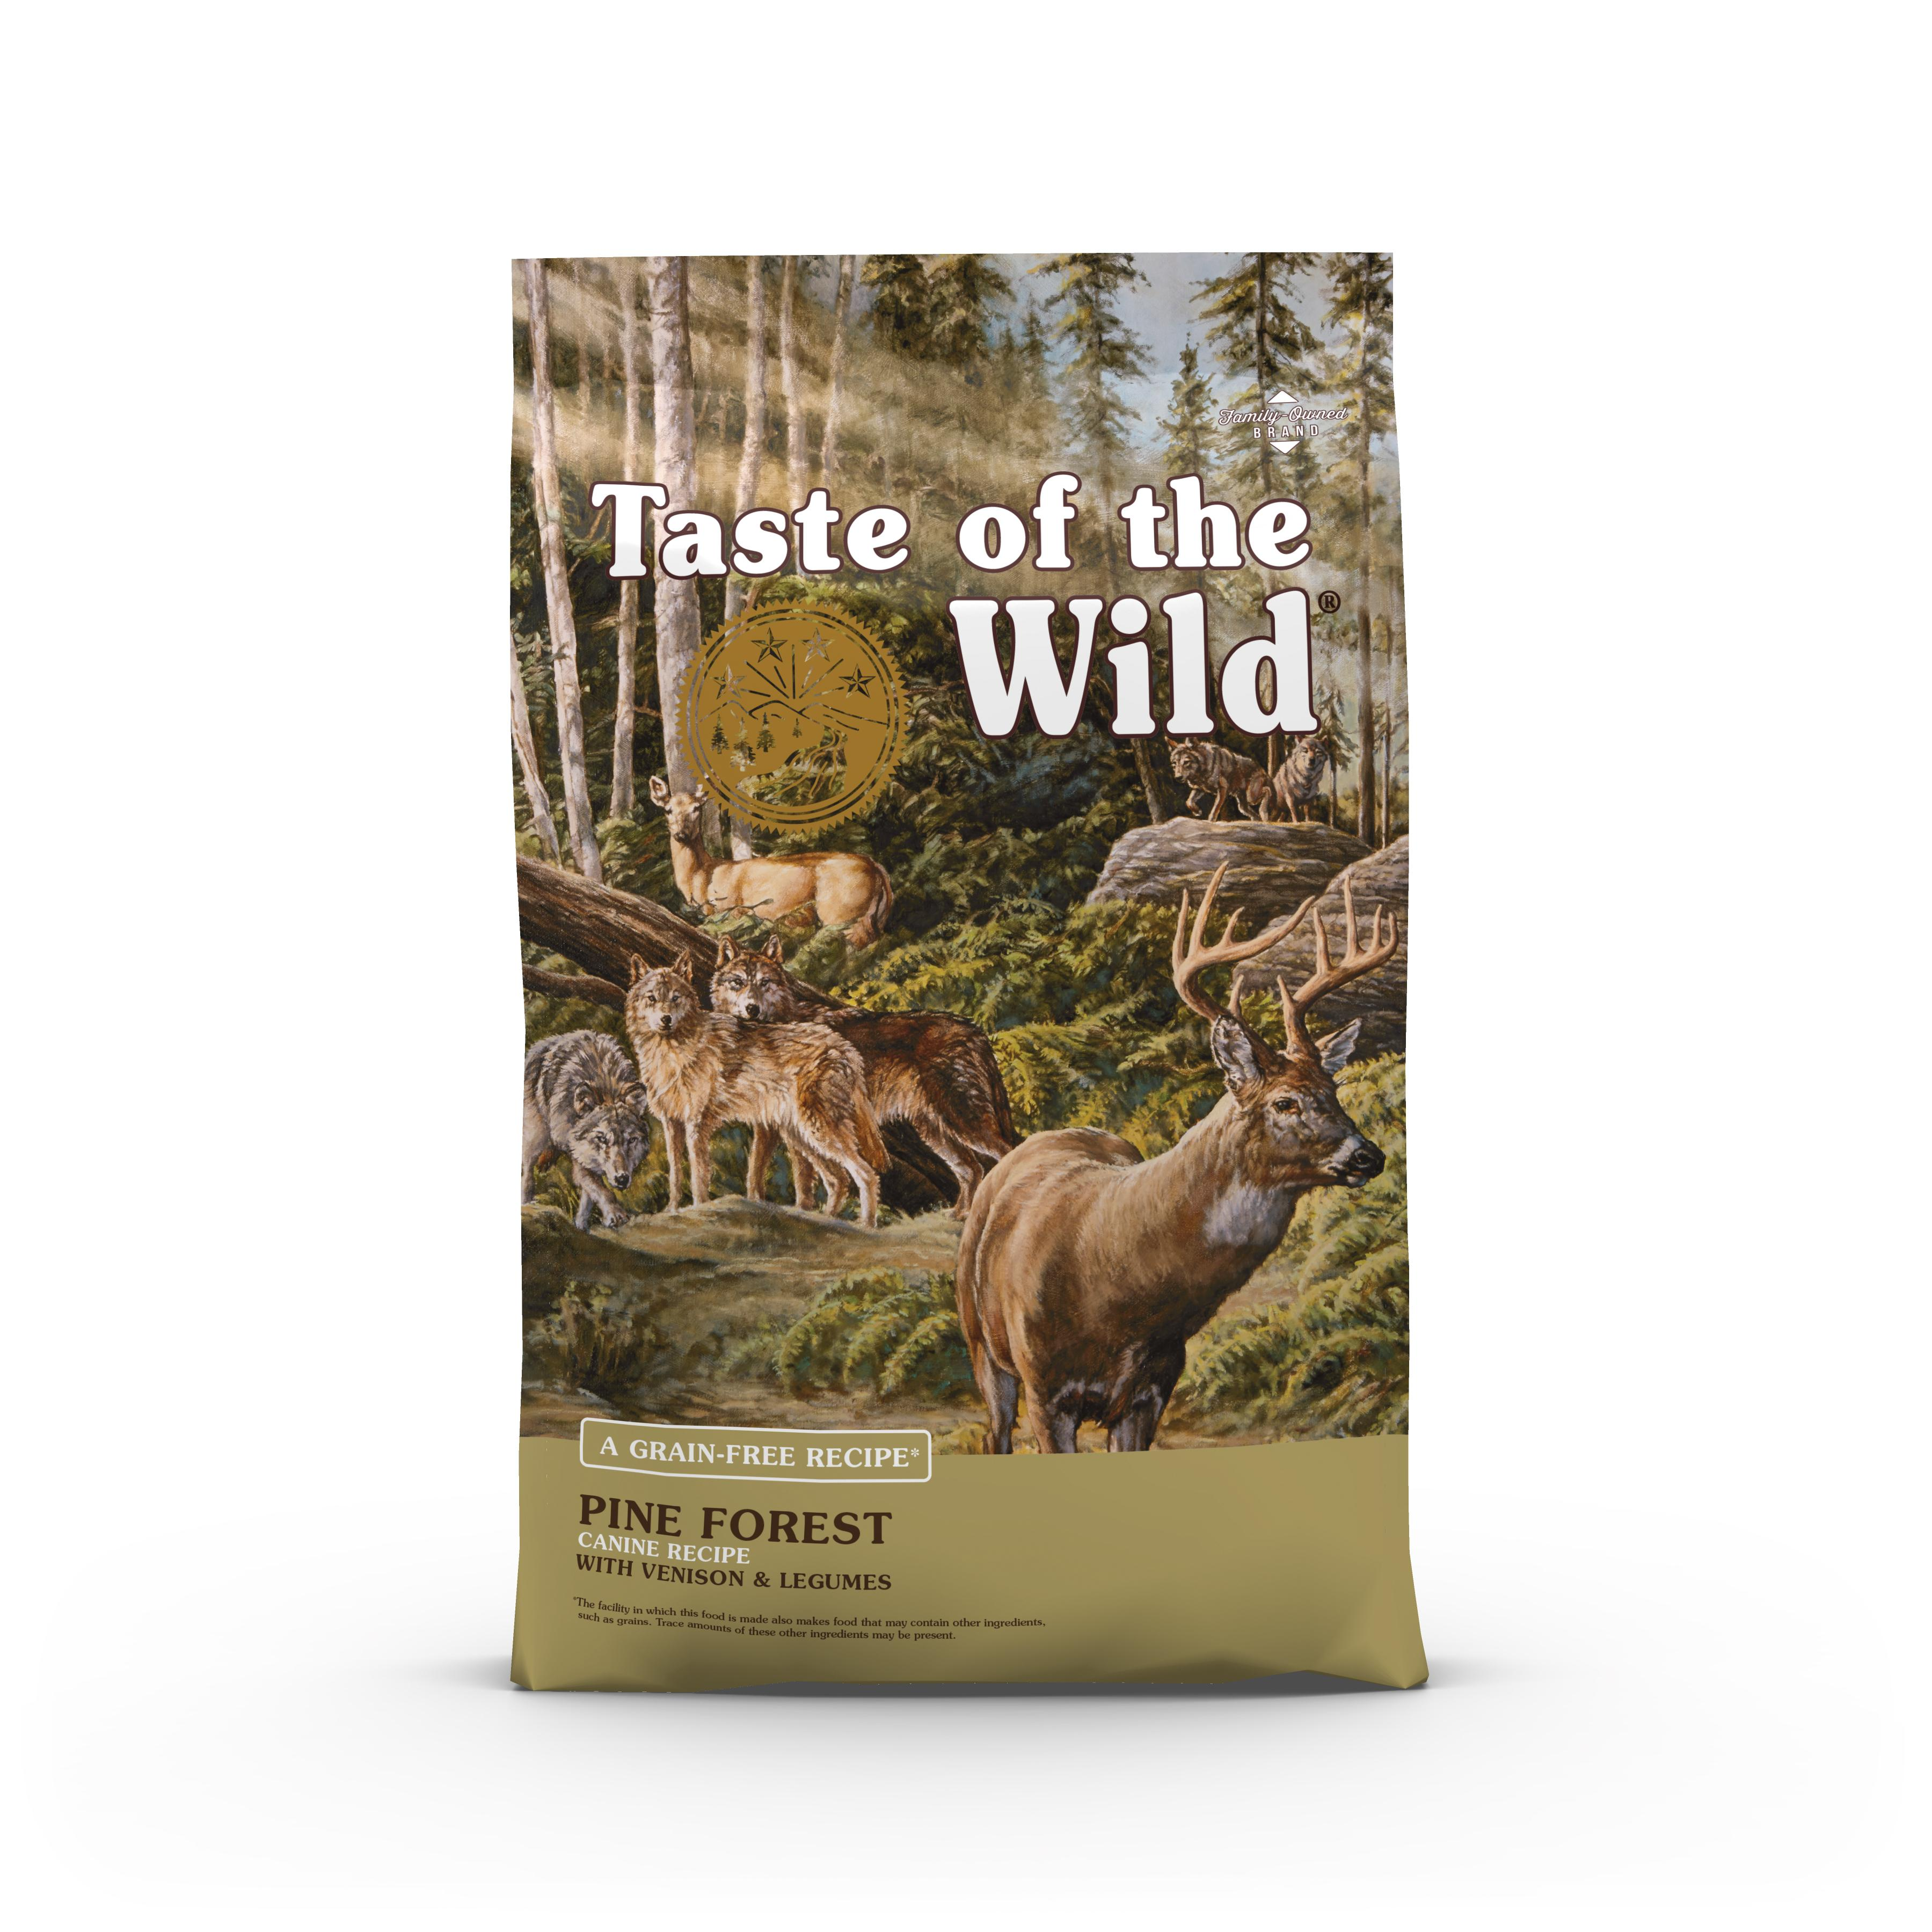 Taste of the Wild Pine Forest Grain-Free Dry Dog Food, 5-lb